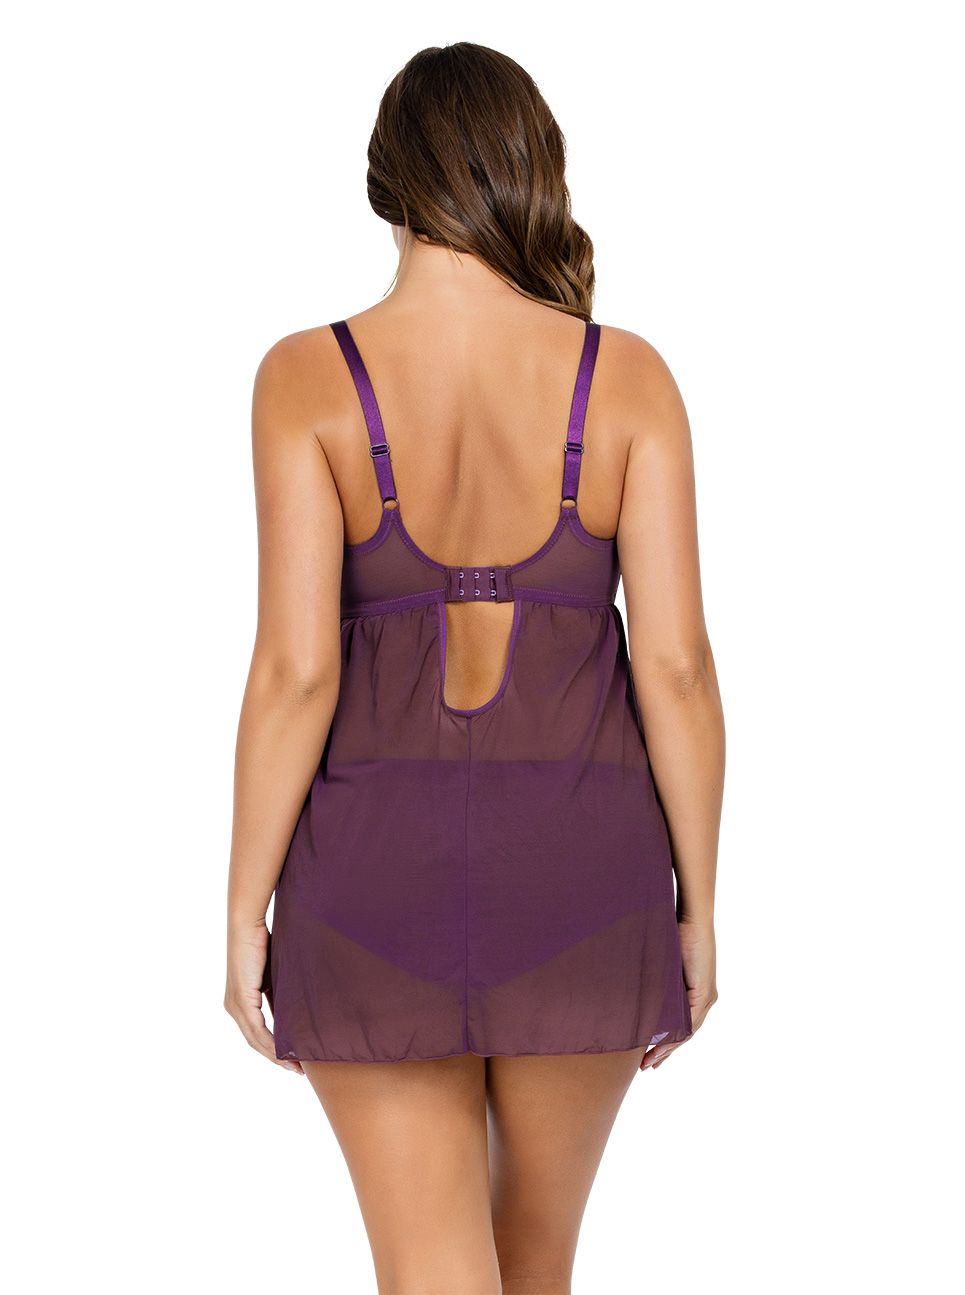 PARFAIT Lulu UnlinedWireBabydollP5618 Grape Back1 - Lulu Unlined Wired Babydoll - Grape - P5618